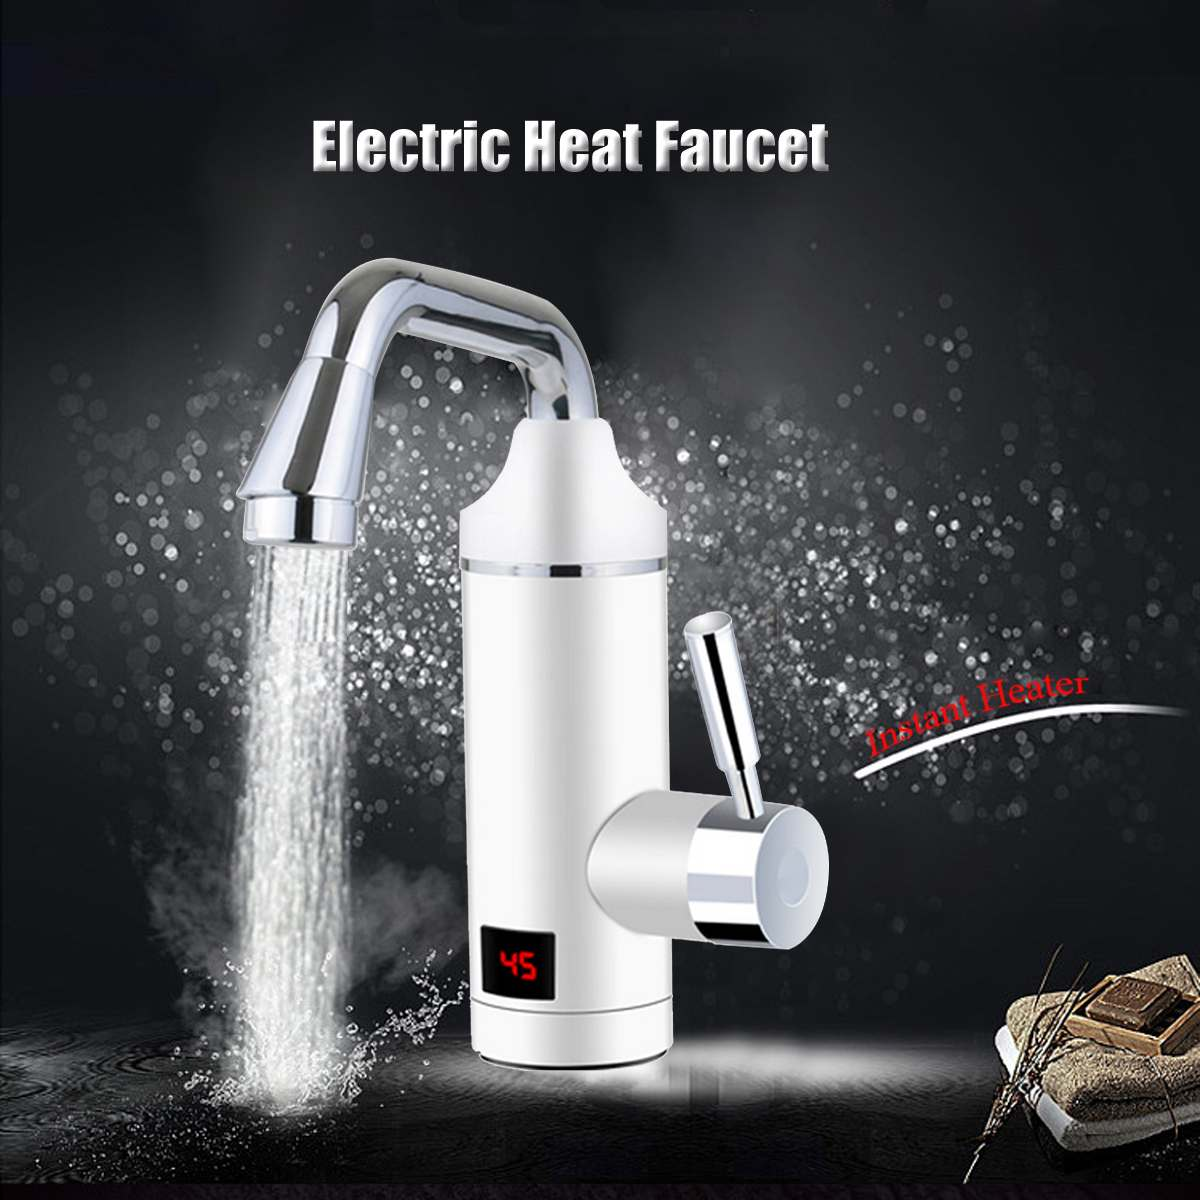 220V Electric Water Heater Faucet 3000W Kitchen Instant Fast Heating White Digital Display Leakage Protection Kitchen Faucet